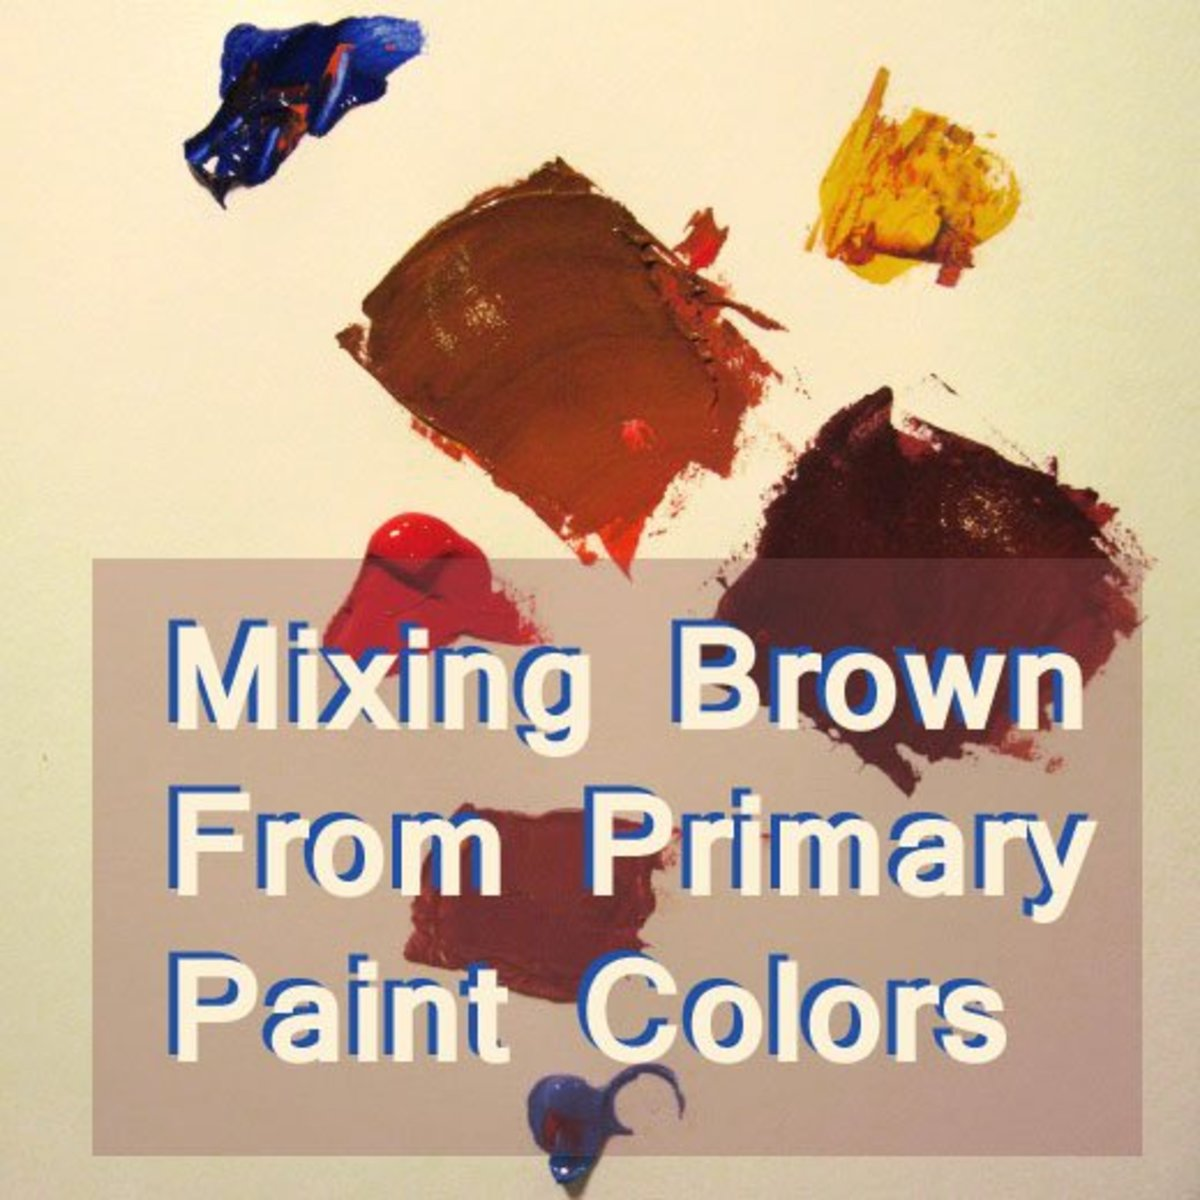 Mixing brown paint from red, blue, and yellow.